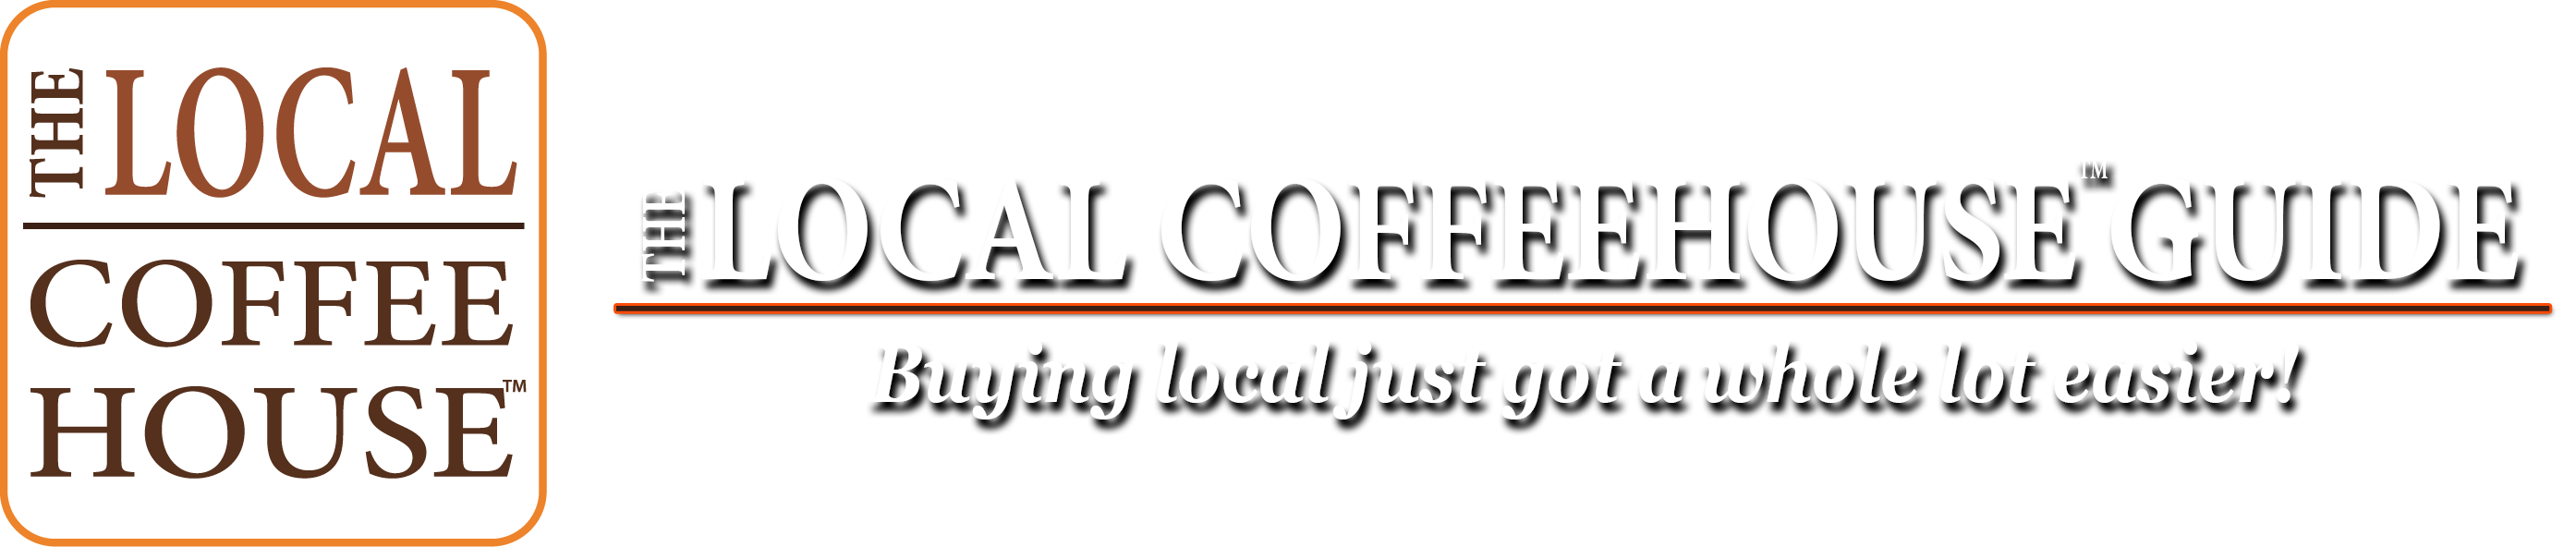 The Local Coffeehouse Guide App & Website